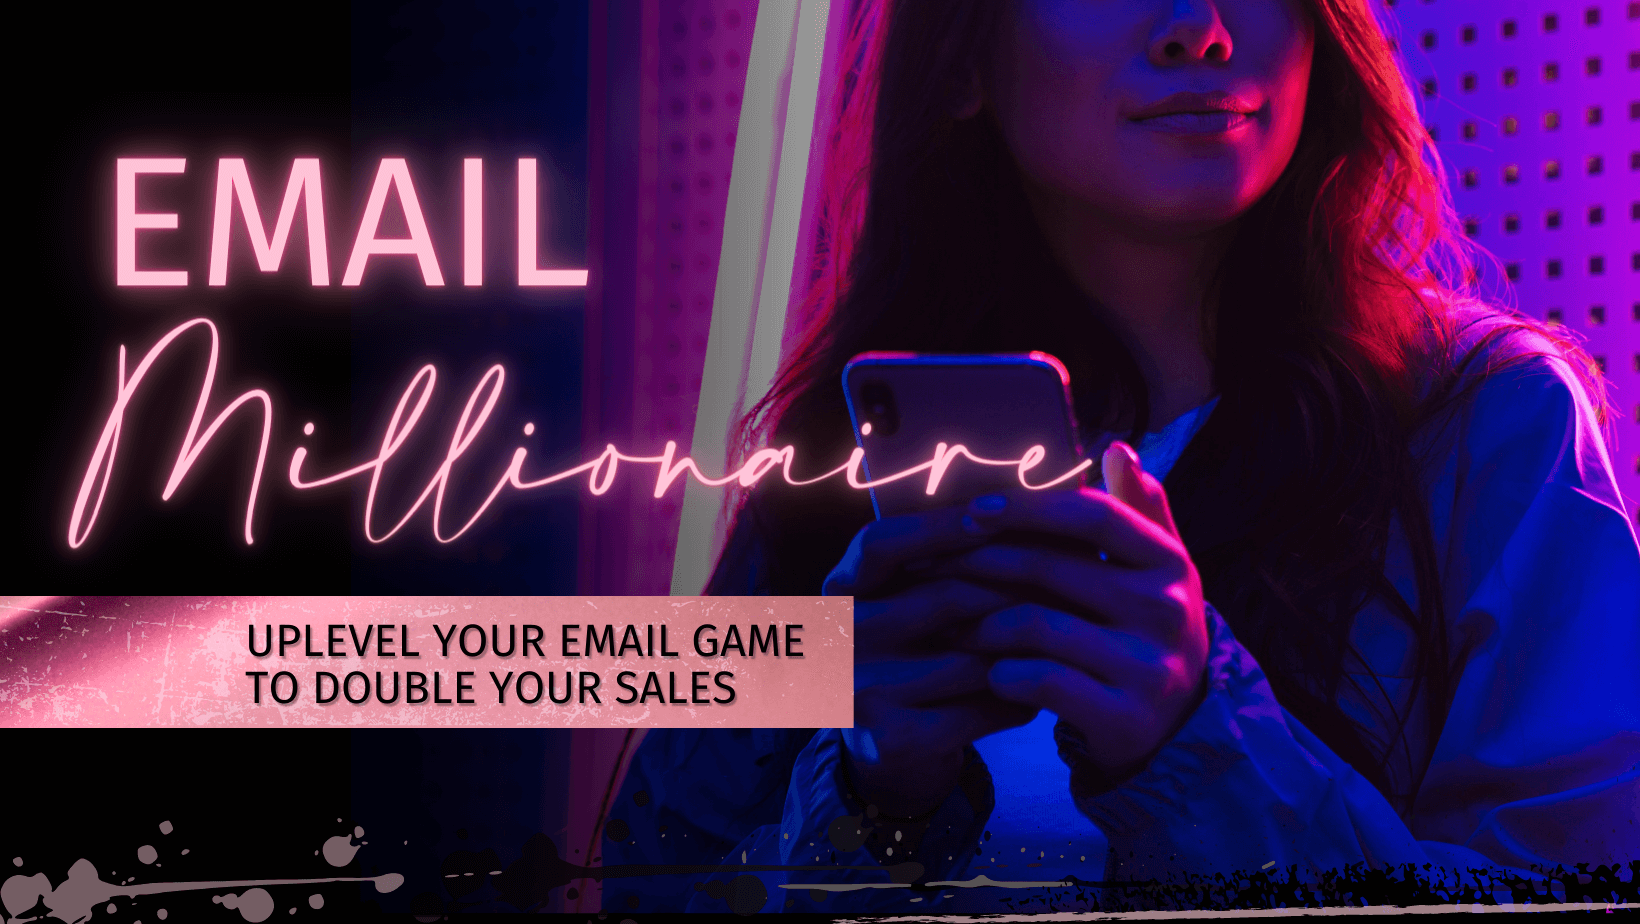 The email marketing process that helped me generate over 3 million in coaching sales